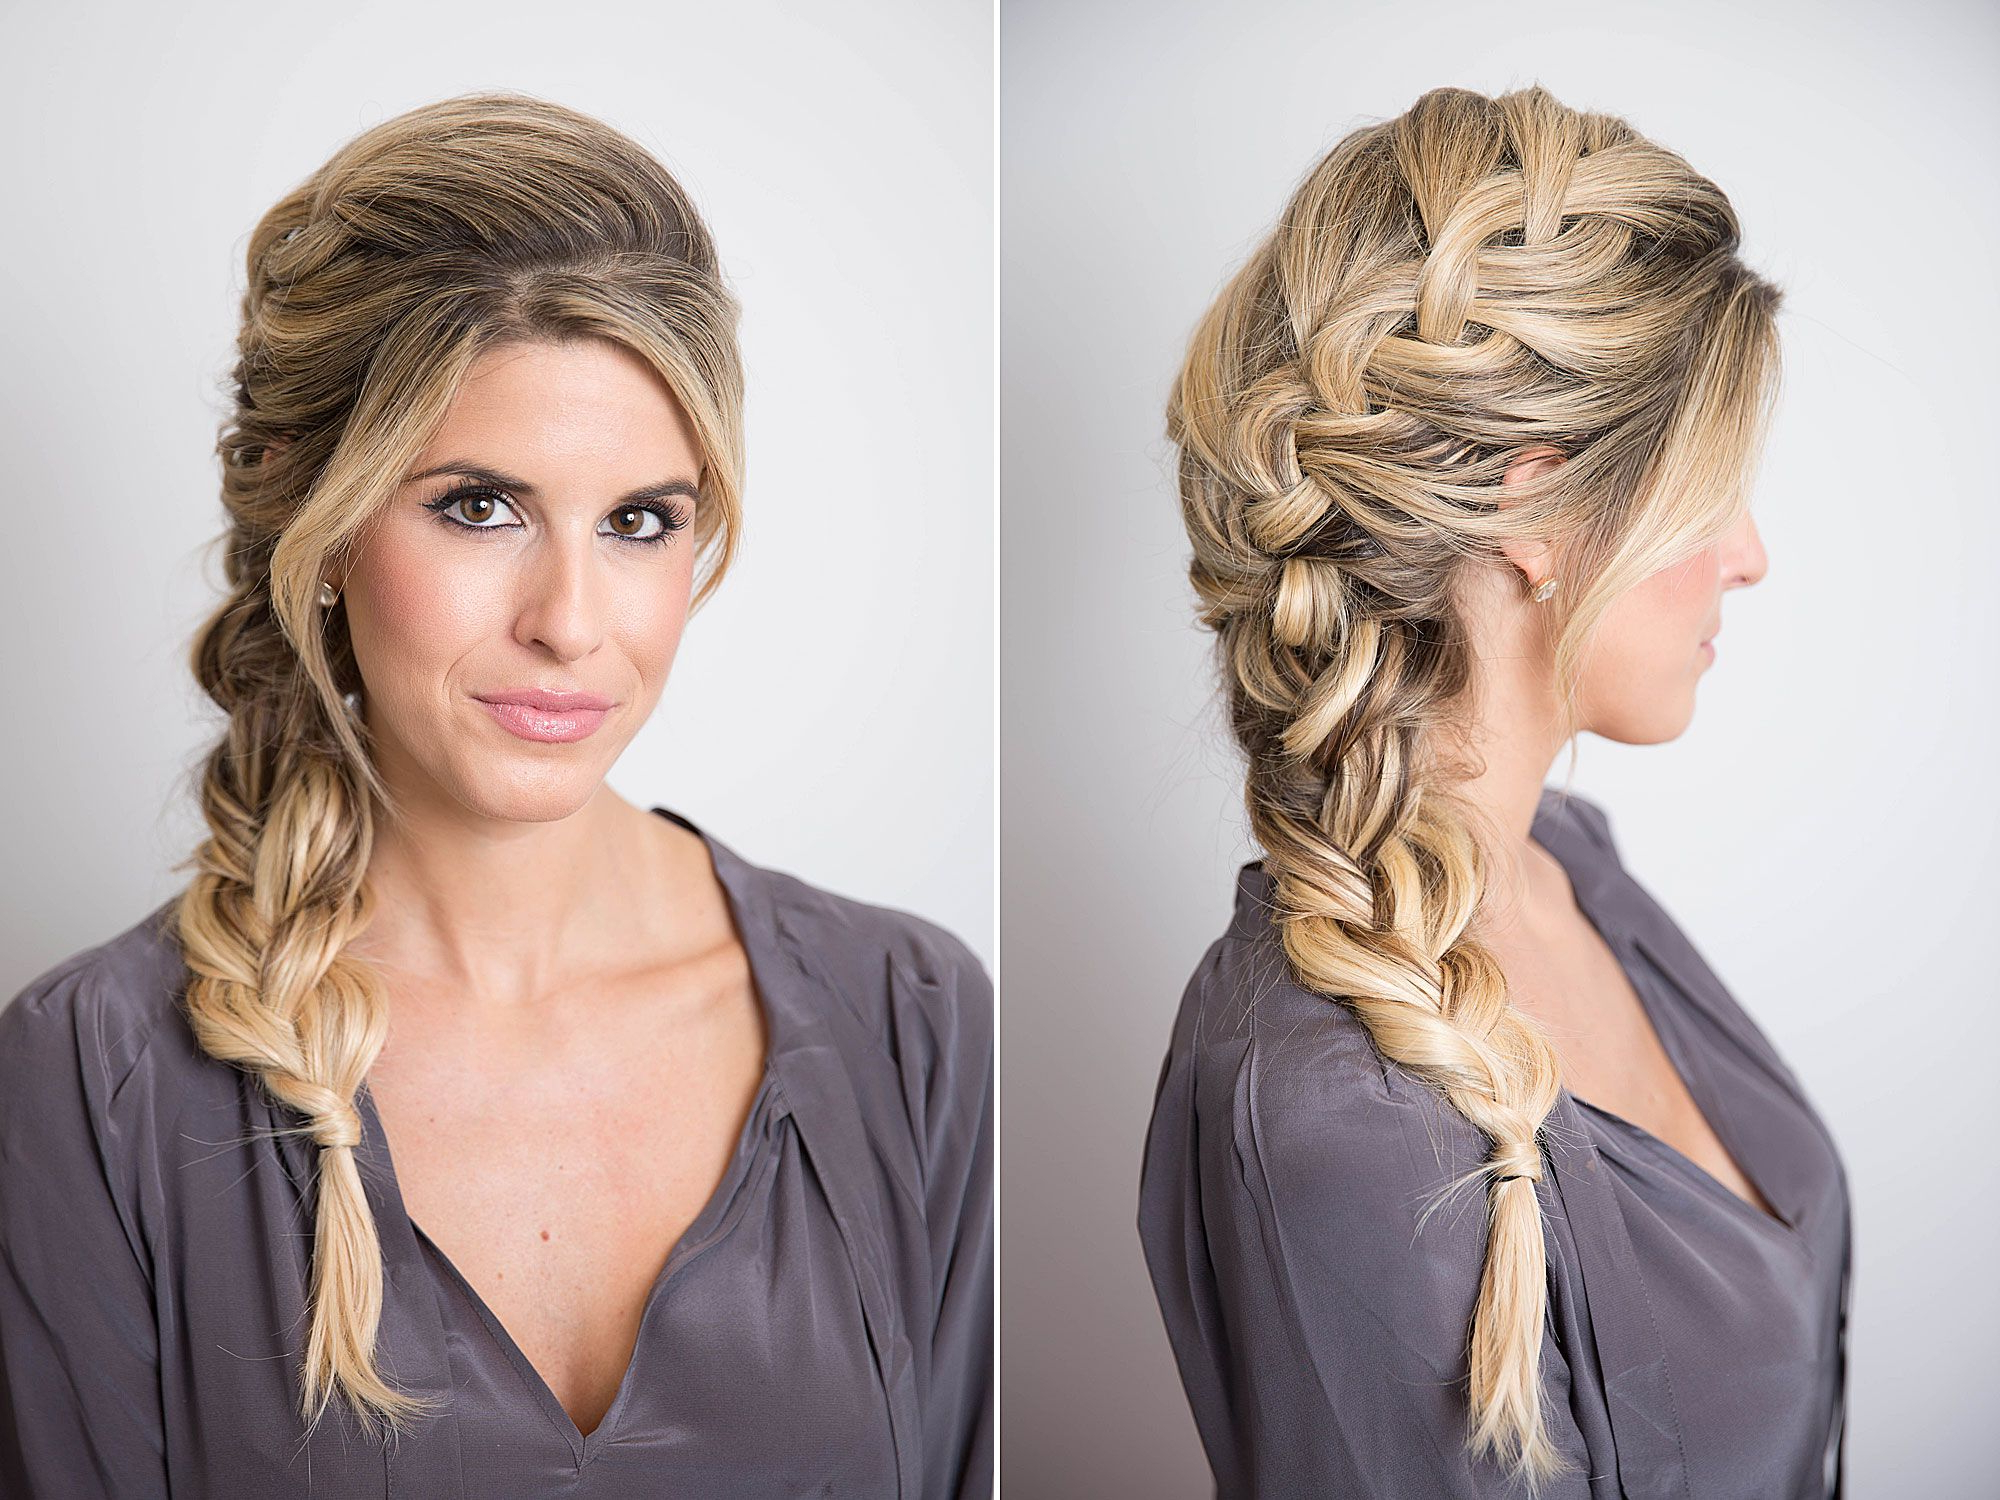 17 Braided Hairstyles With Gifs – How To Do Every Type Of Braid Intended For Popular Rope And Fishtail Braid Hairstyles (Gallery 19 of 20)